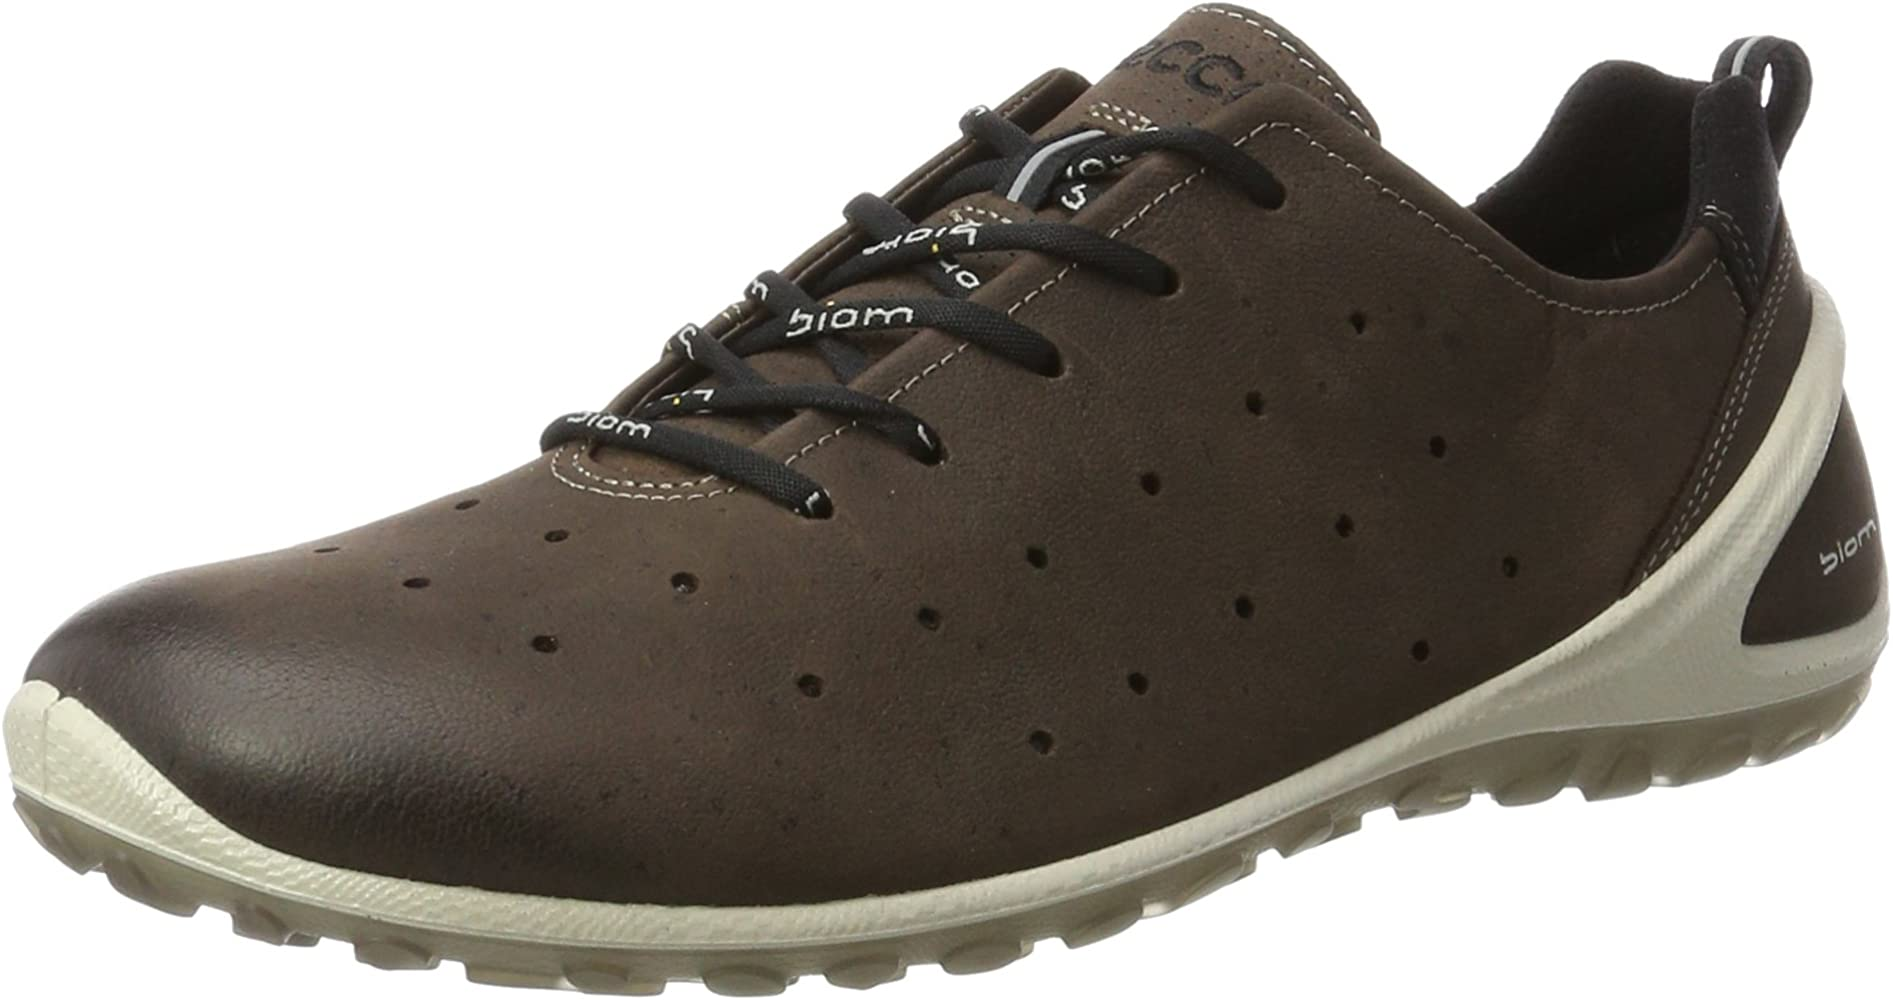 ecco biom lite walking shoe